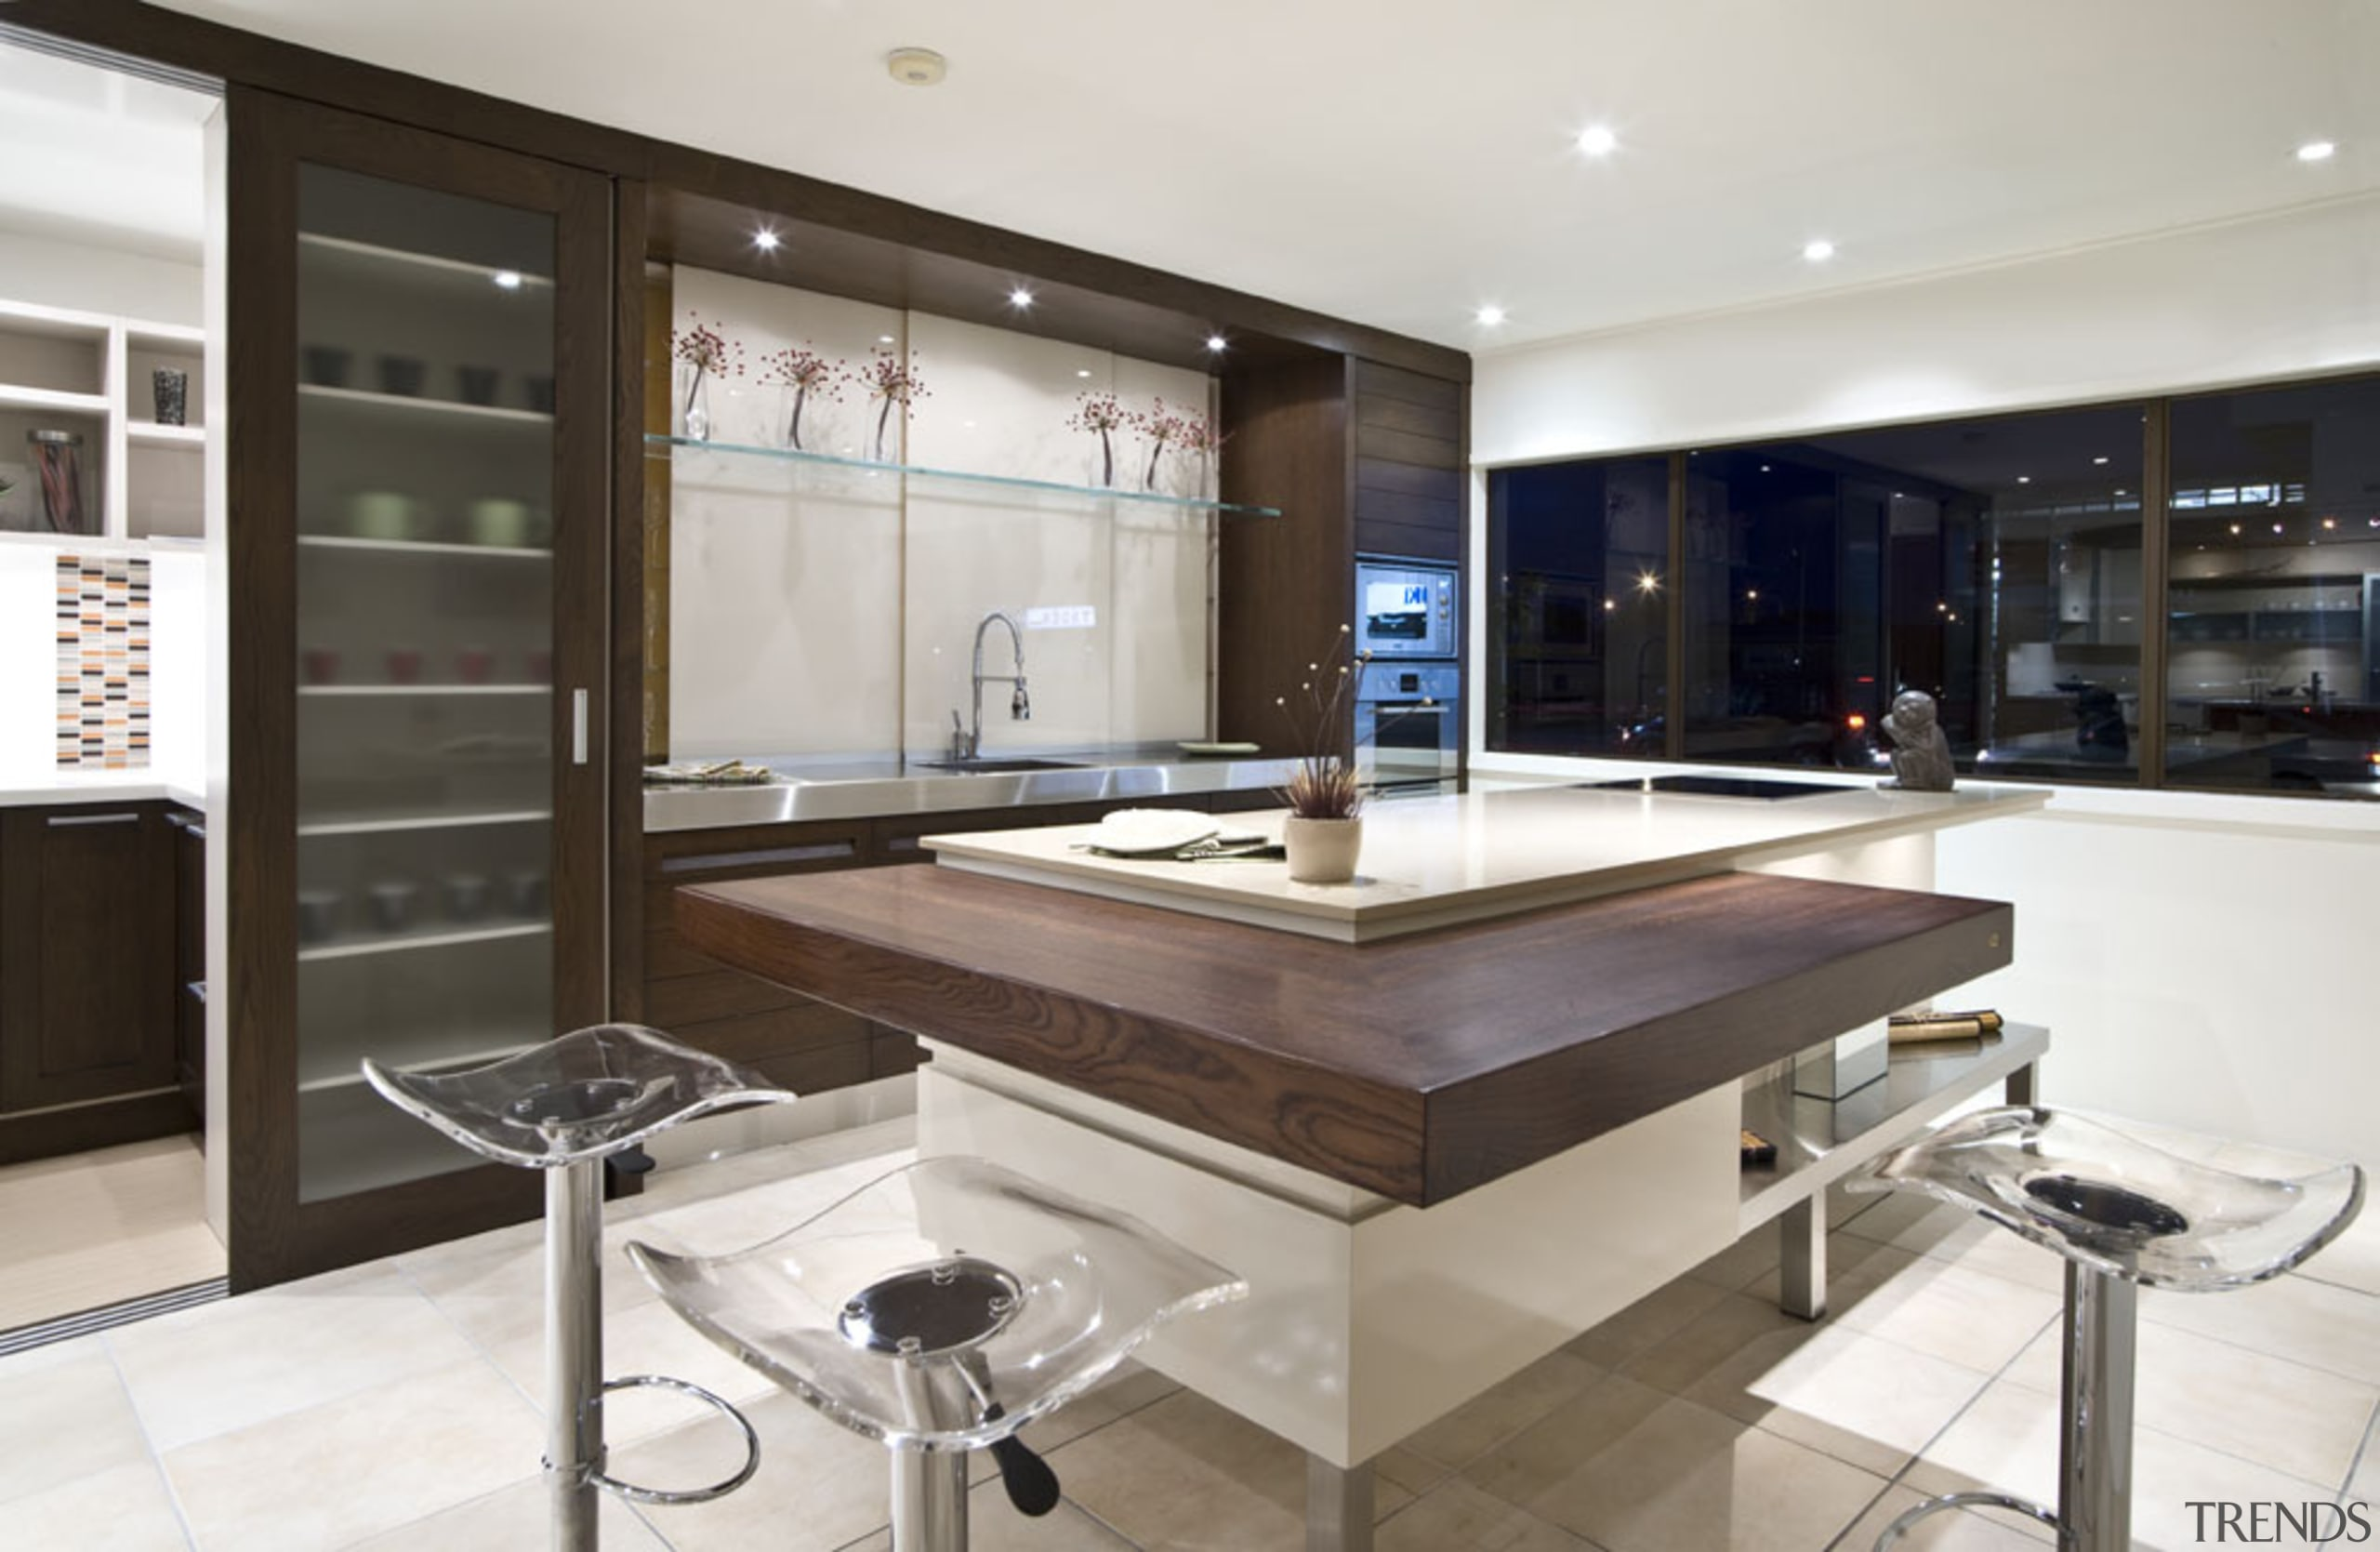 Greenlane - cabinetry | countertop | cuisine classique cabinetry, countertop, cuisine classique, interior design, kitchen, white, black